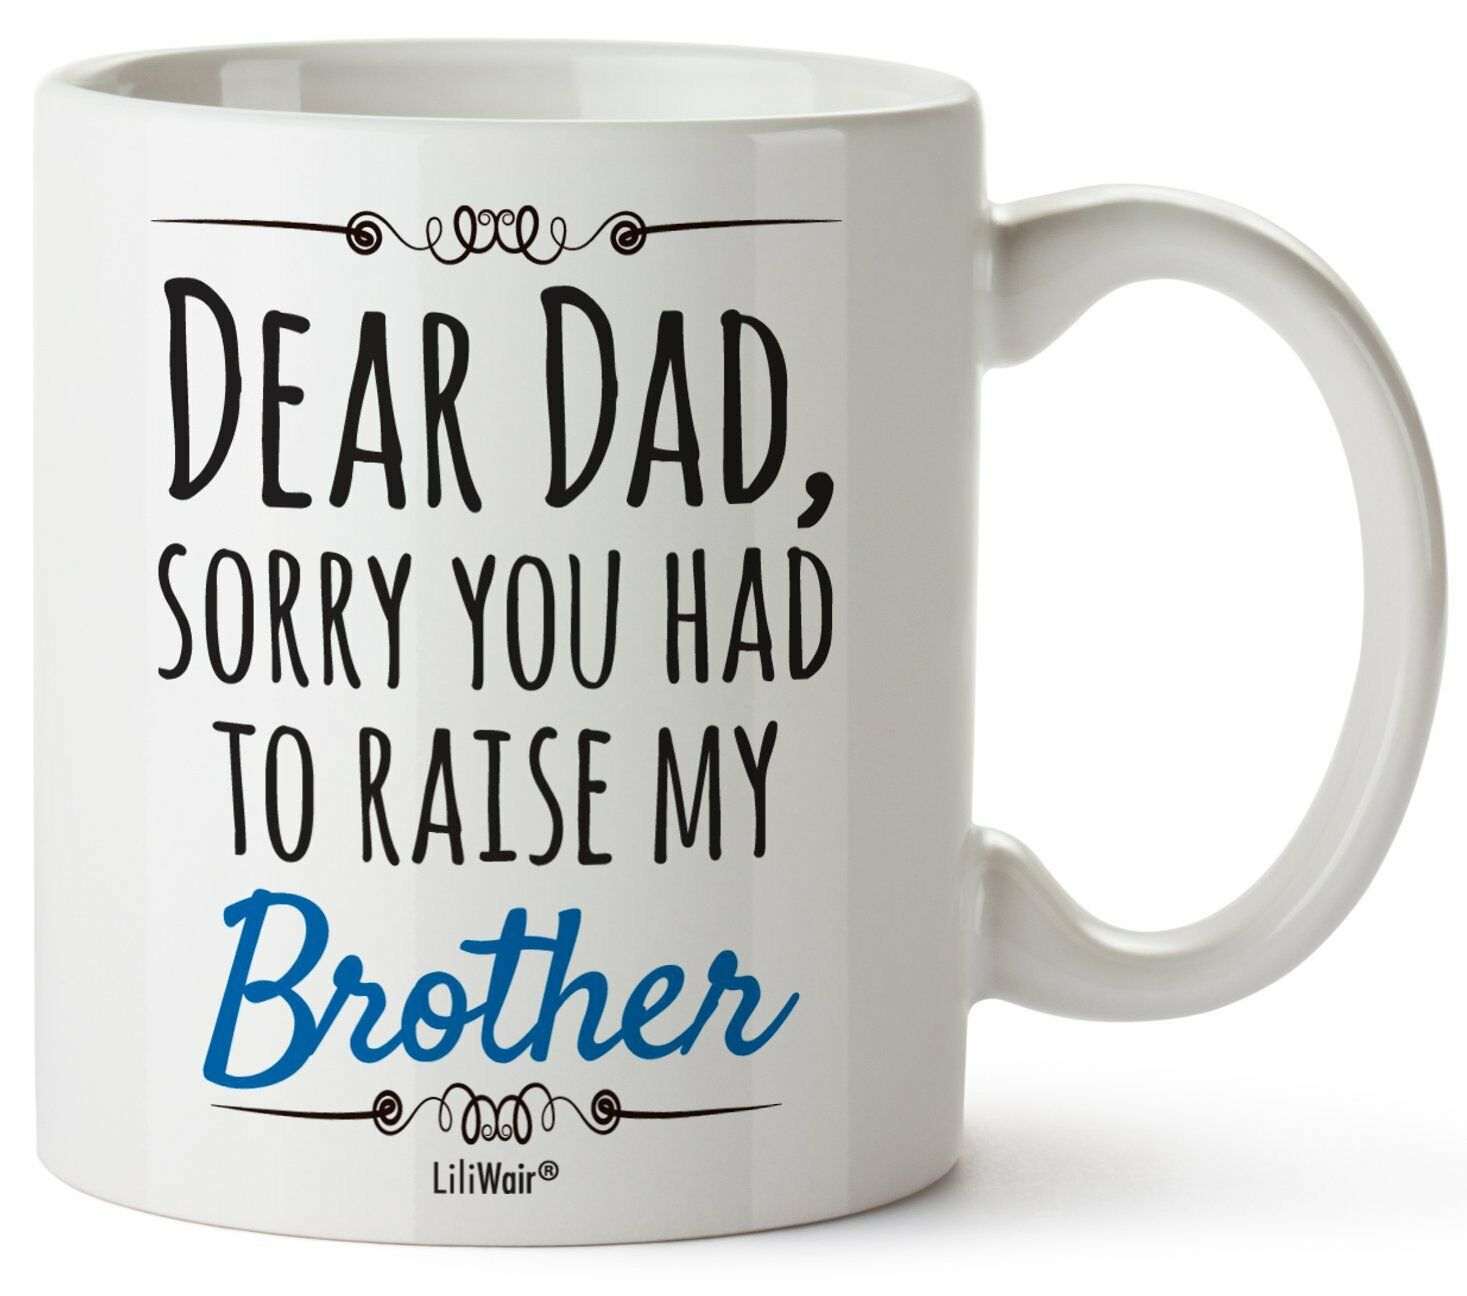 Best Dad Gifts From Son Daughter Christmas For Birthday First Mug Cool Happy For Sale Online